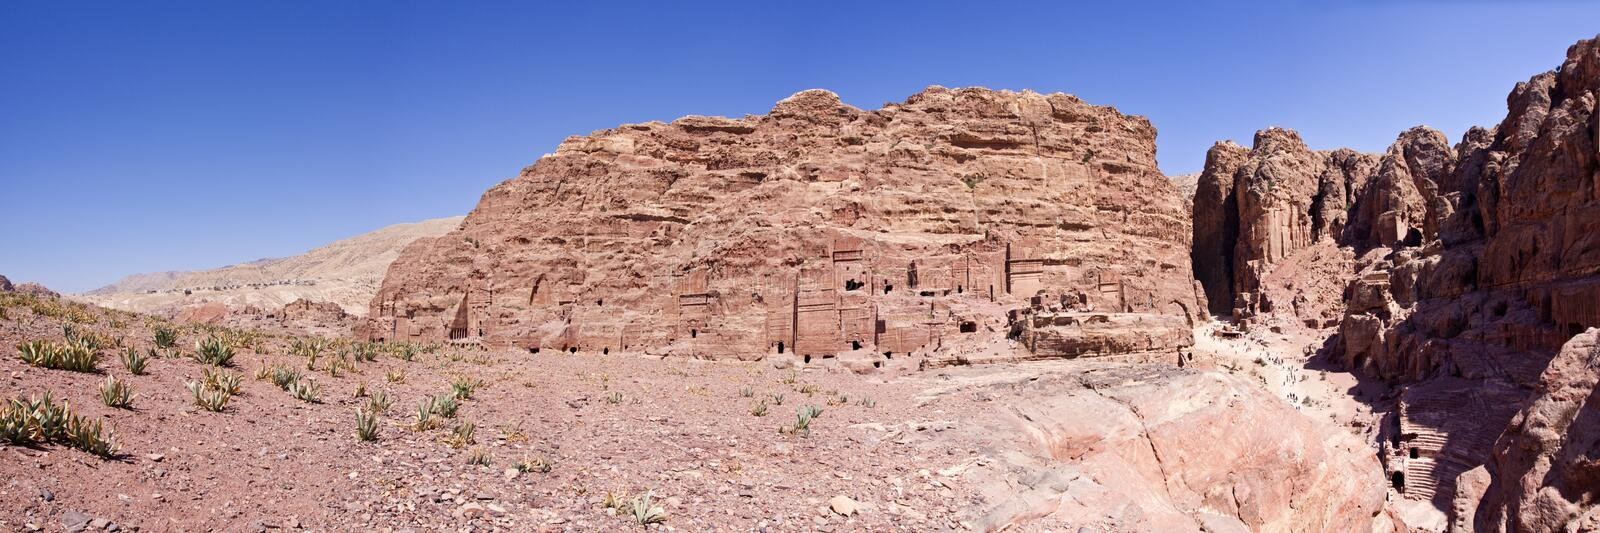 Panorama of the Caves - Petra in Jordan royalty free stock photography